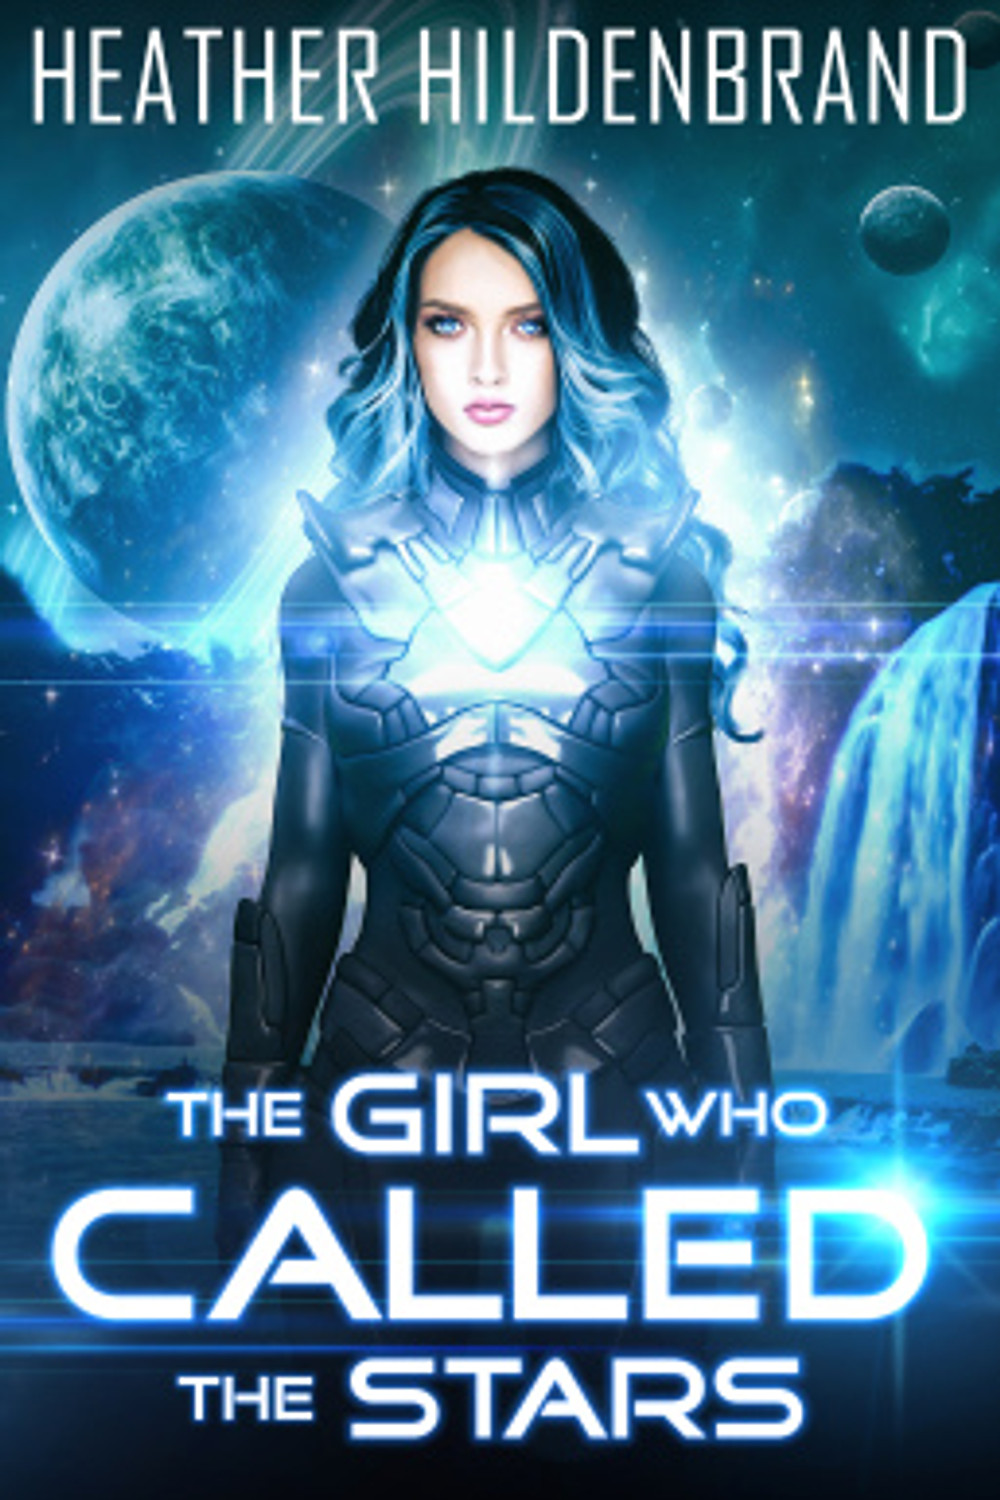 The Girl Who Called The Stars cover final.jpg